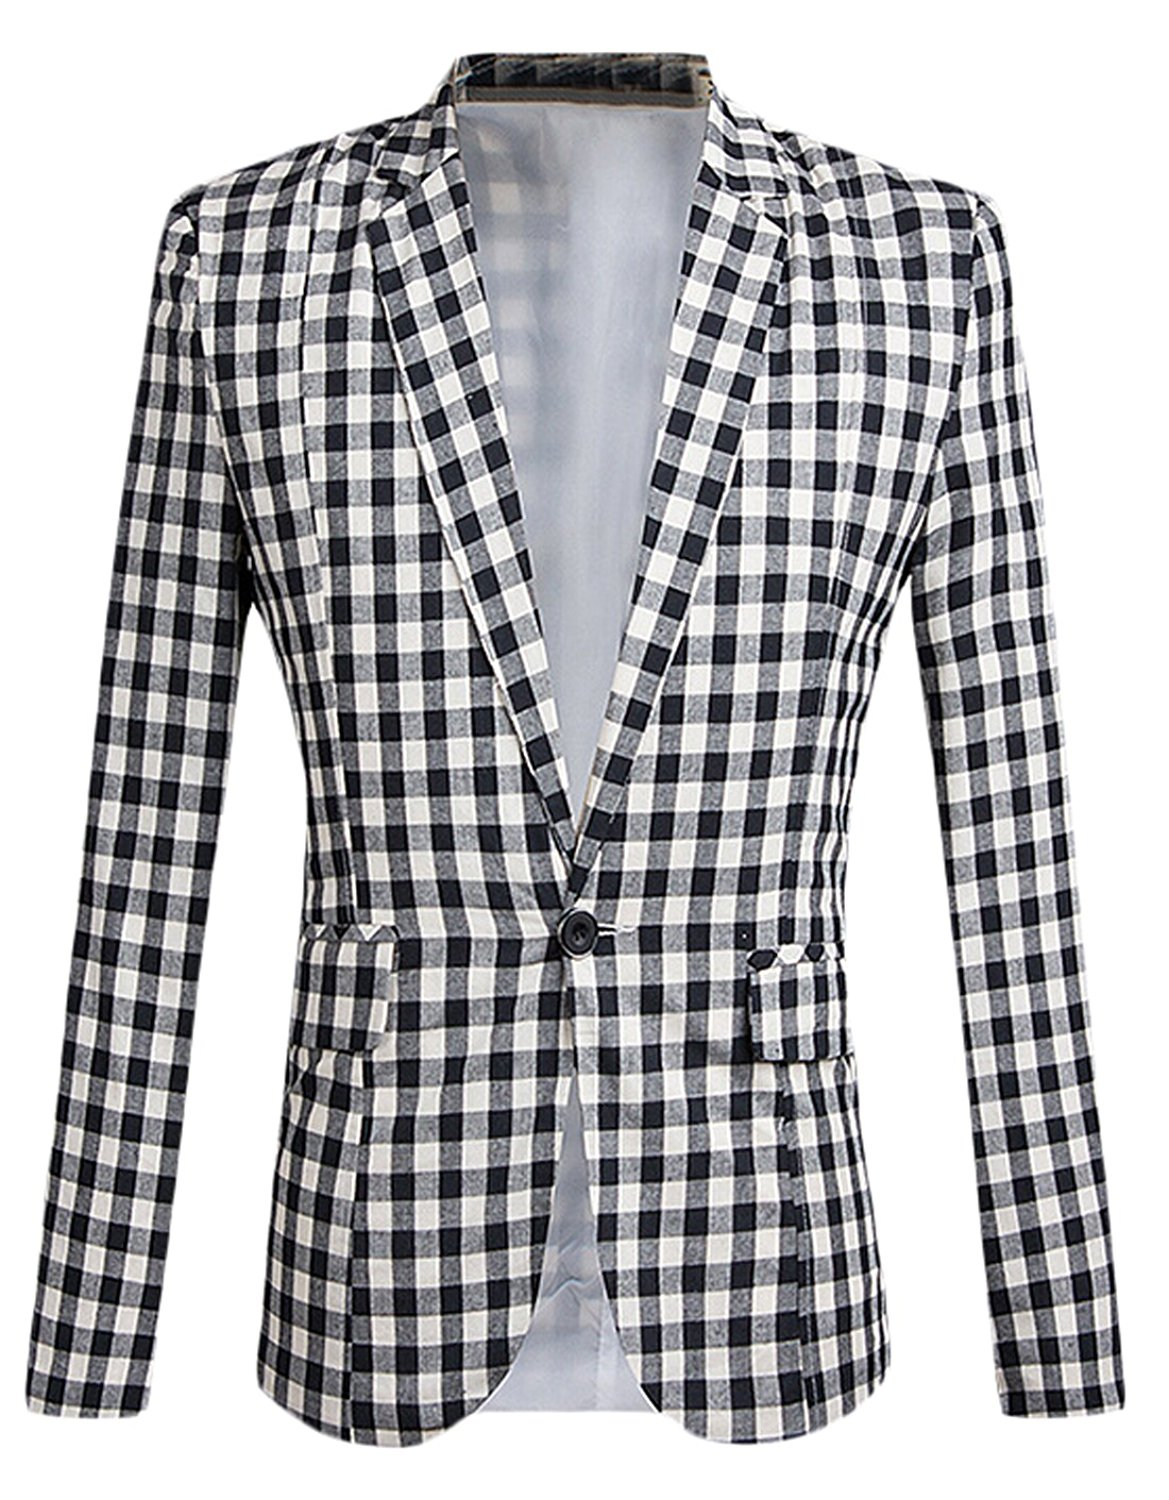 WANSHIYISHE Mens Fashion Checkered Slim Suits